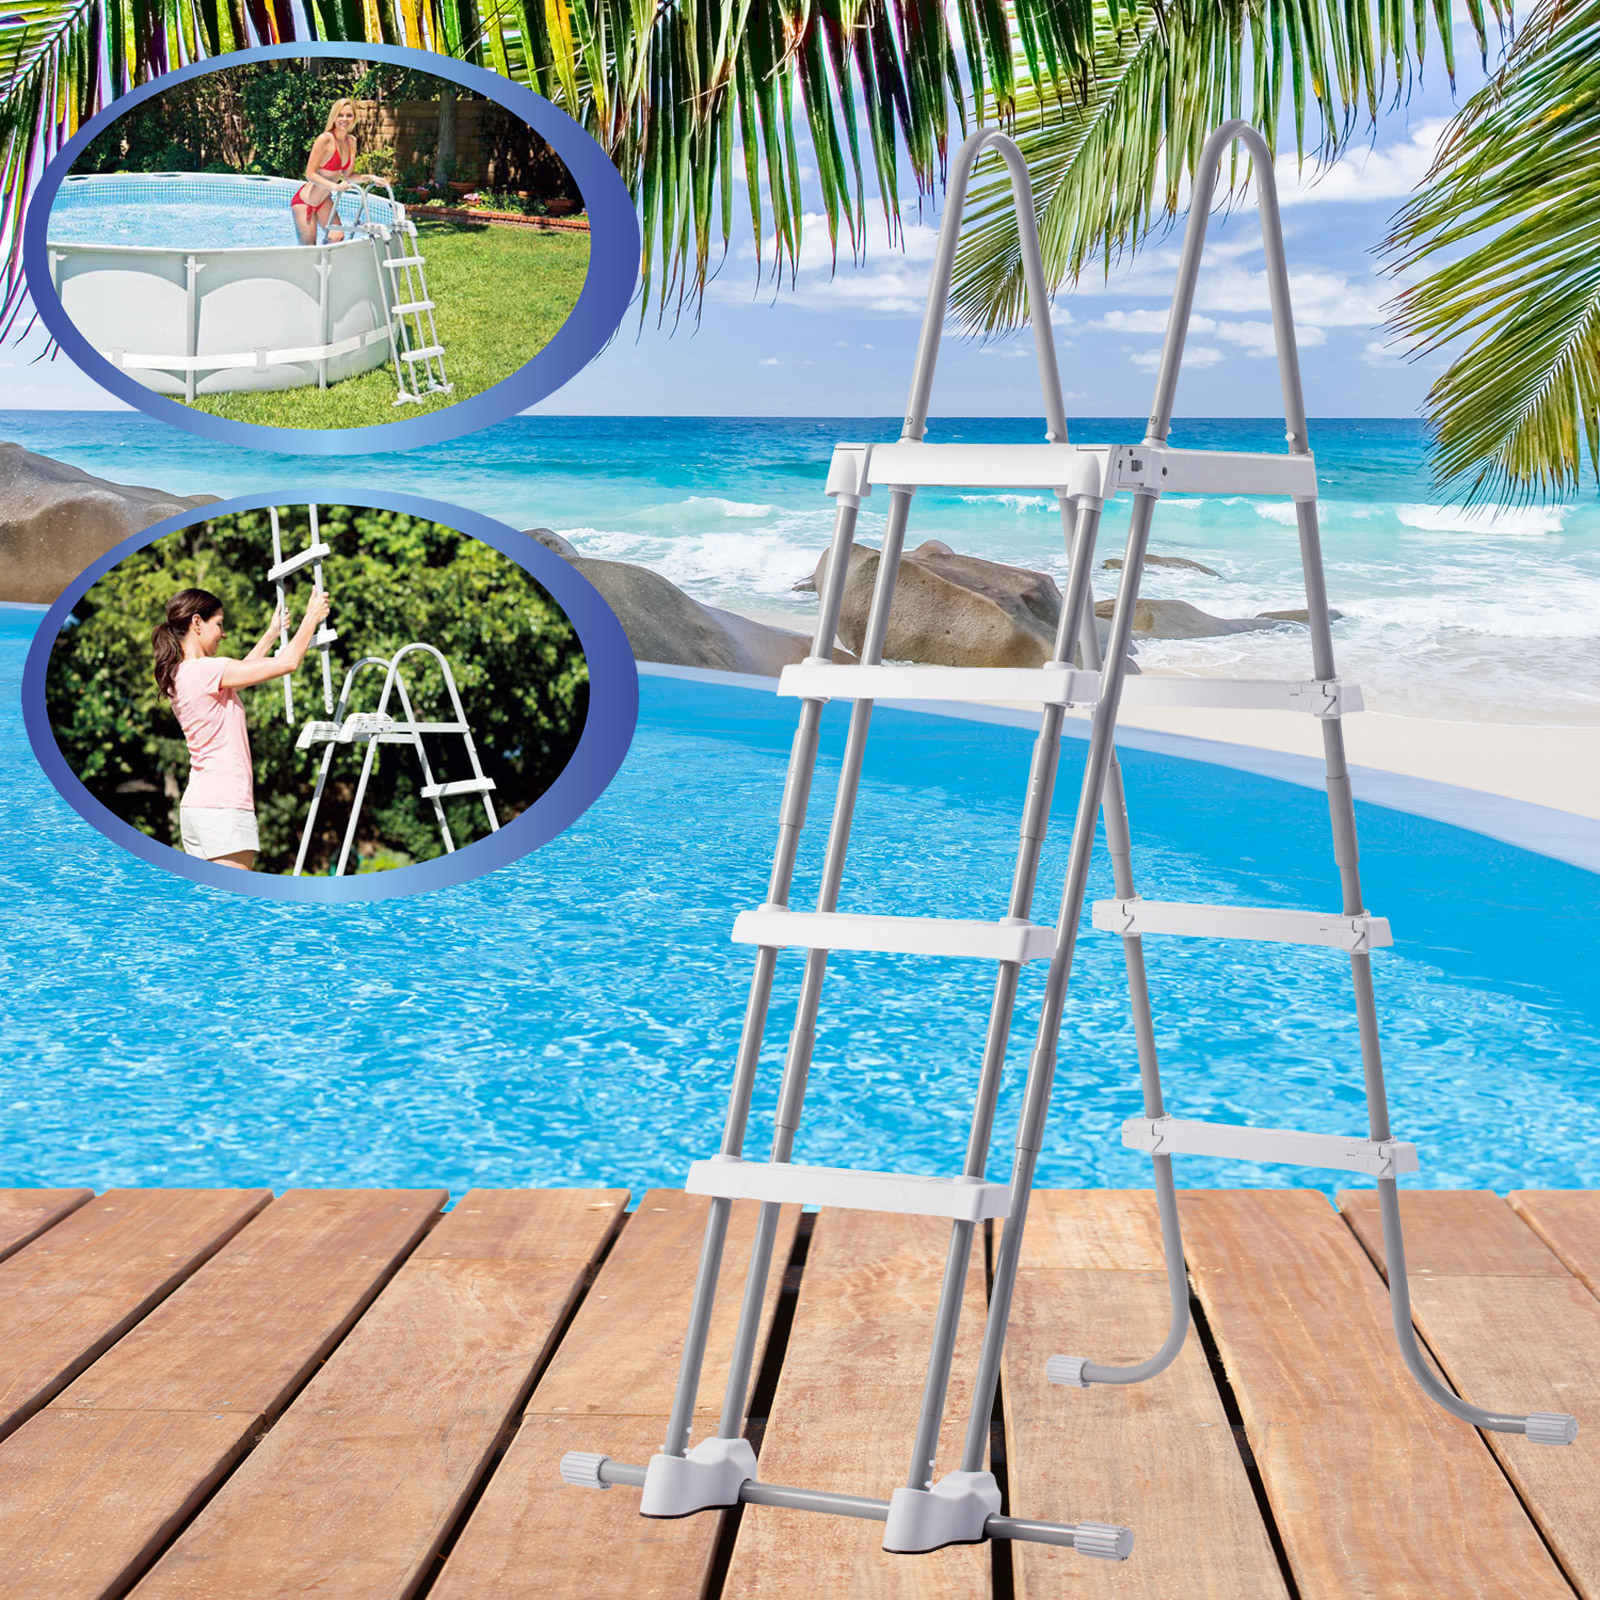 Pool Solarfolie Reinigen Intex 488x122 Cm Swimming Pool Frame Set Mit Sandfilter Leiter